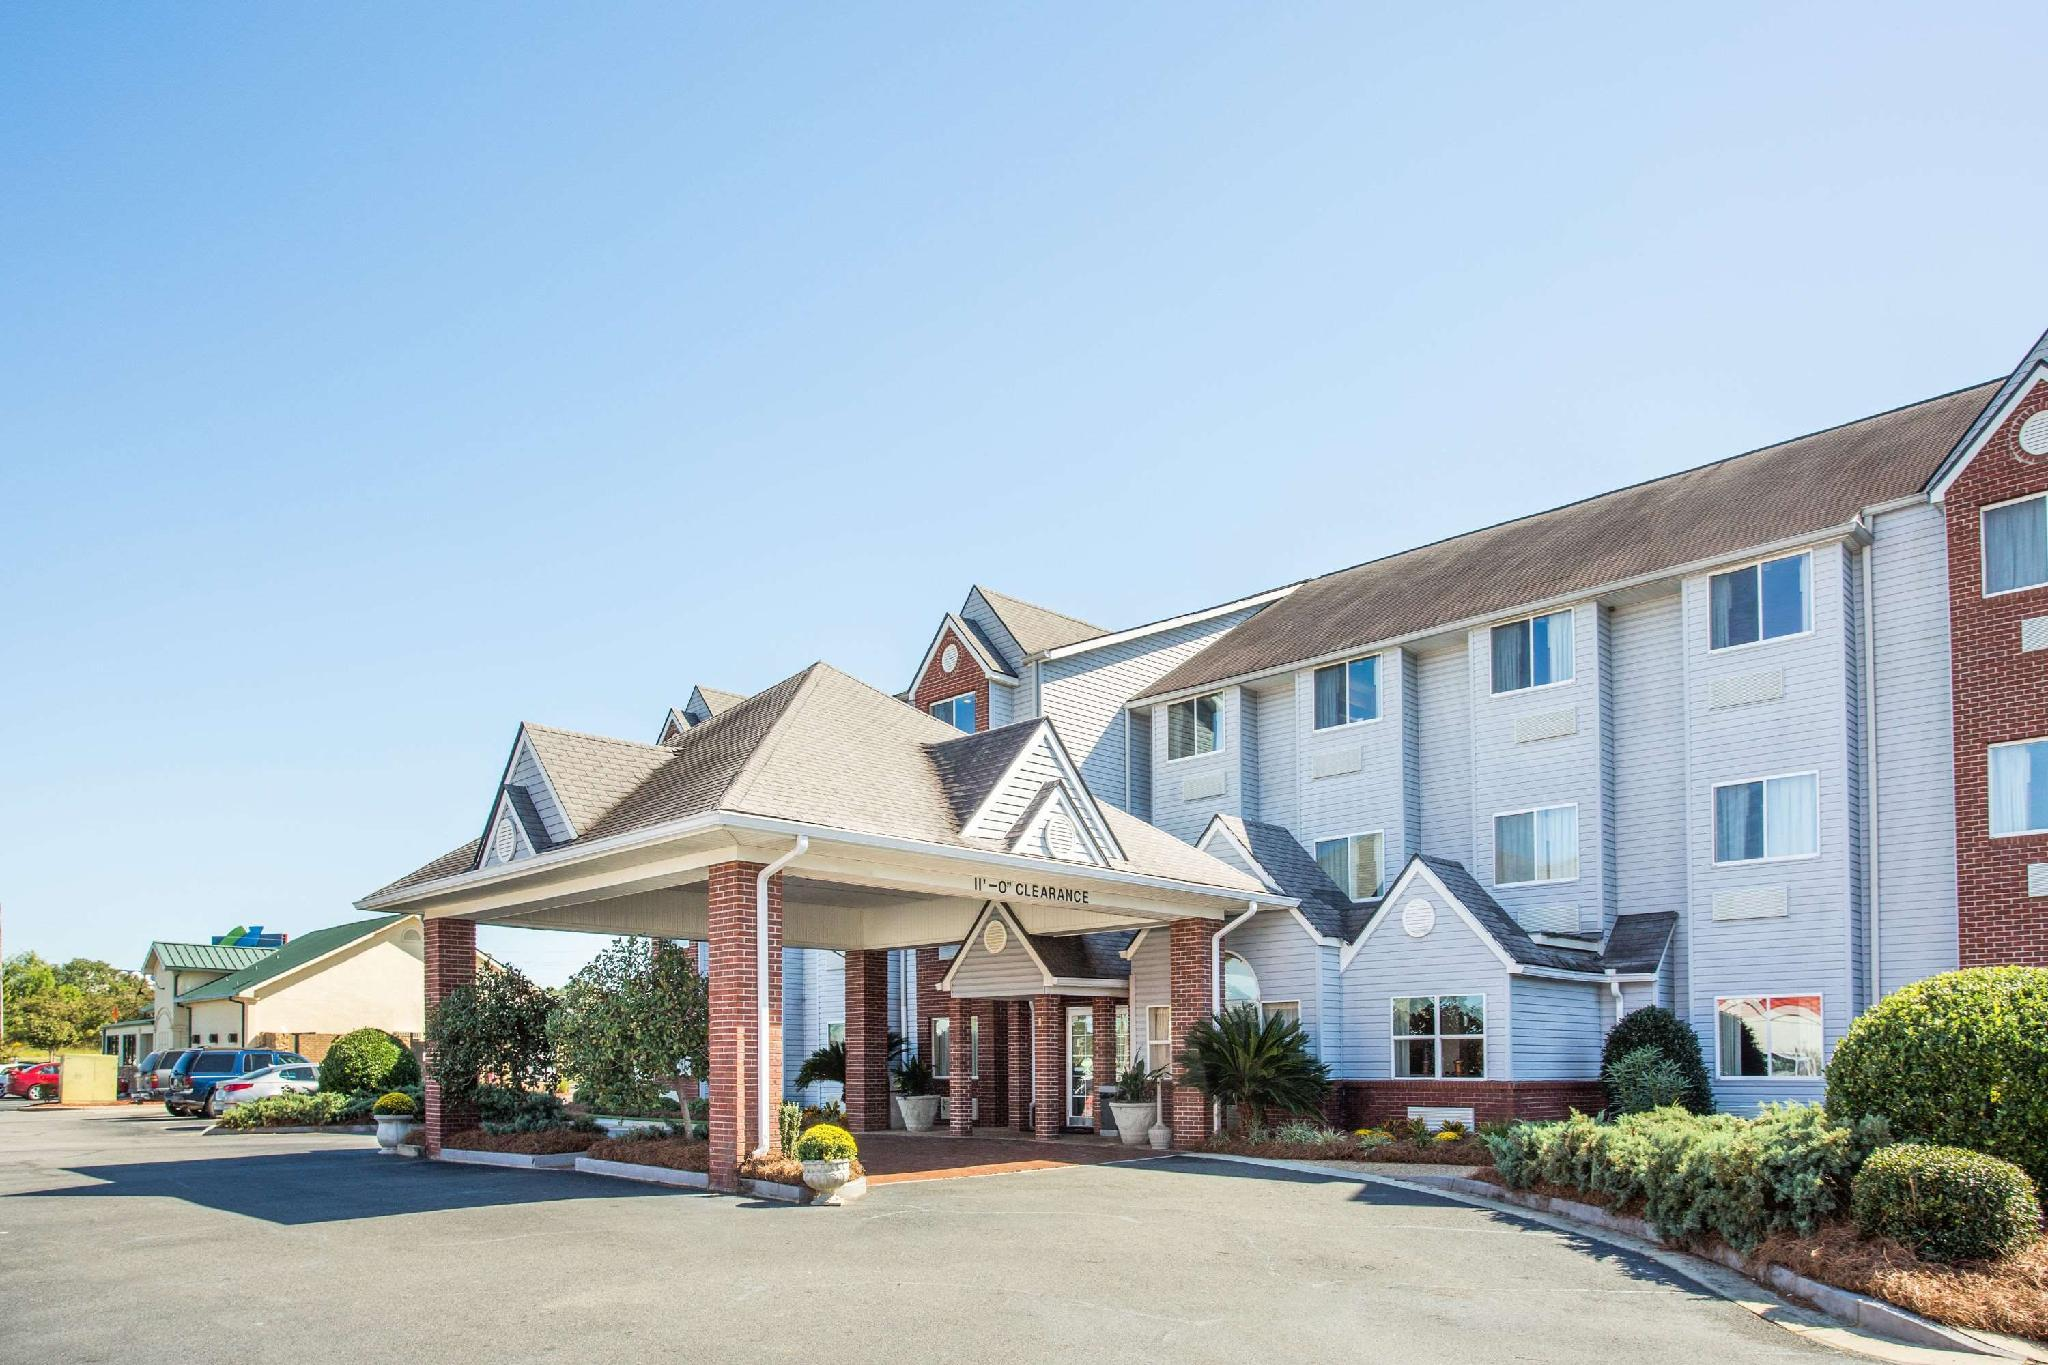 Microtel Inn And Suites By Wyndham Tifton